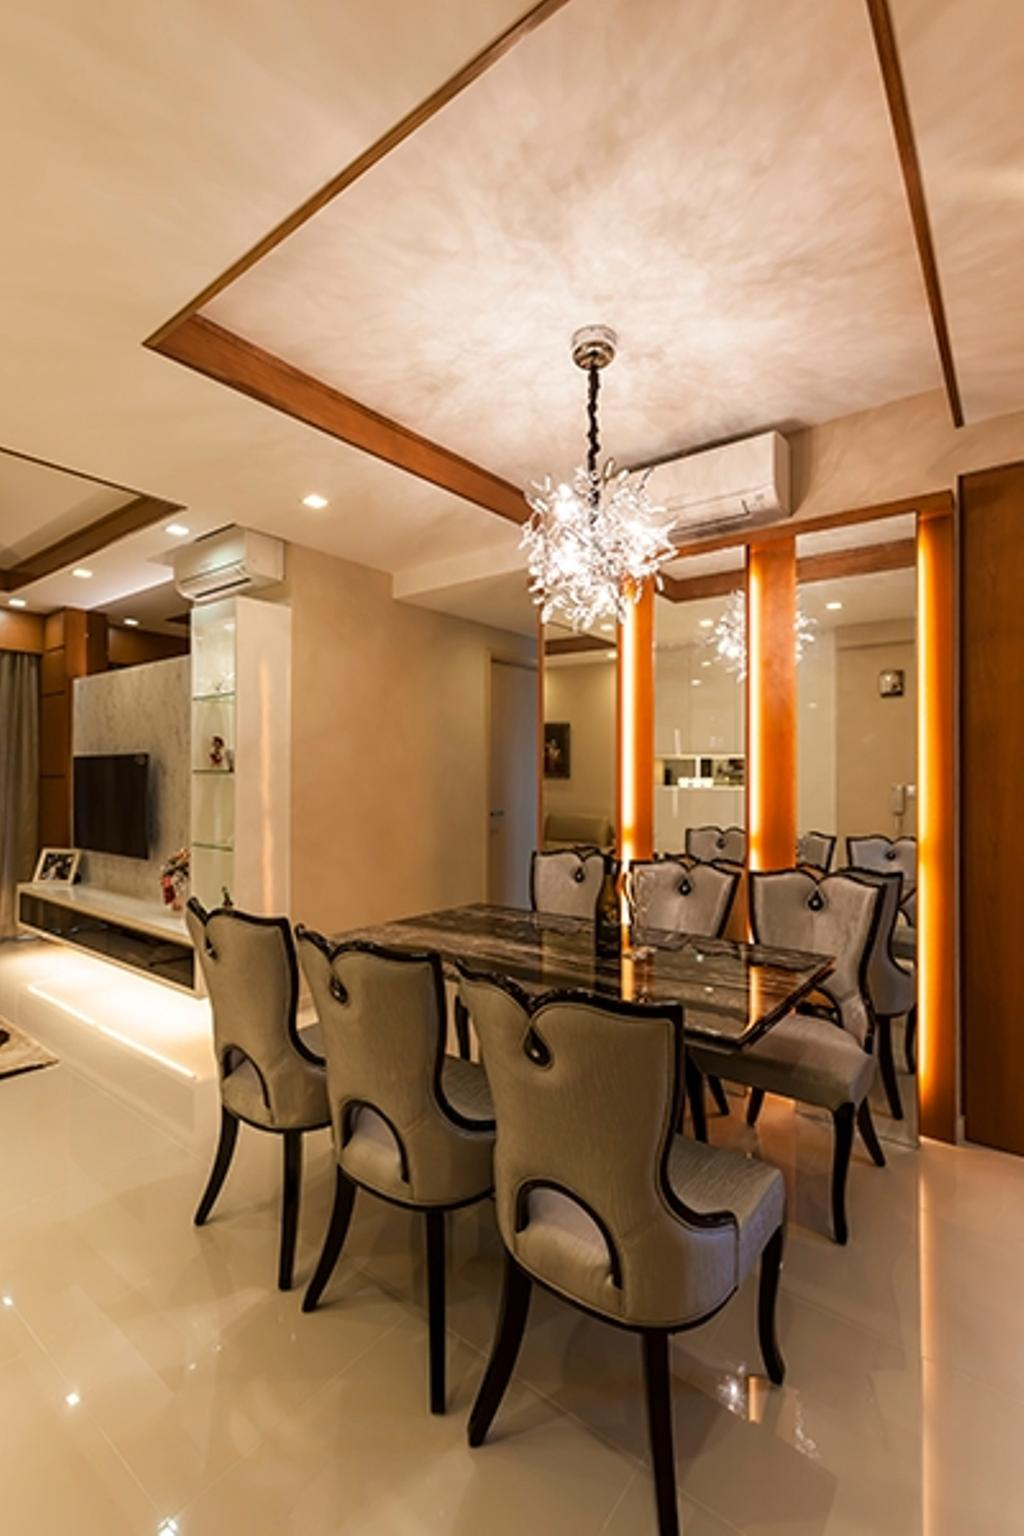 Modern, Condo, Dining Room, Esparina Residences, Interior Designer, Tan Studio, Dining Table, Dining Chairs, Chandelier, False Ceiling, Expensive, Mirrors, Warm Lightings, Aircon, Shiny, Luggage, Suitcase, Indoors, Room, Sink